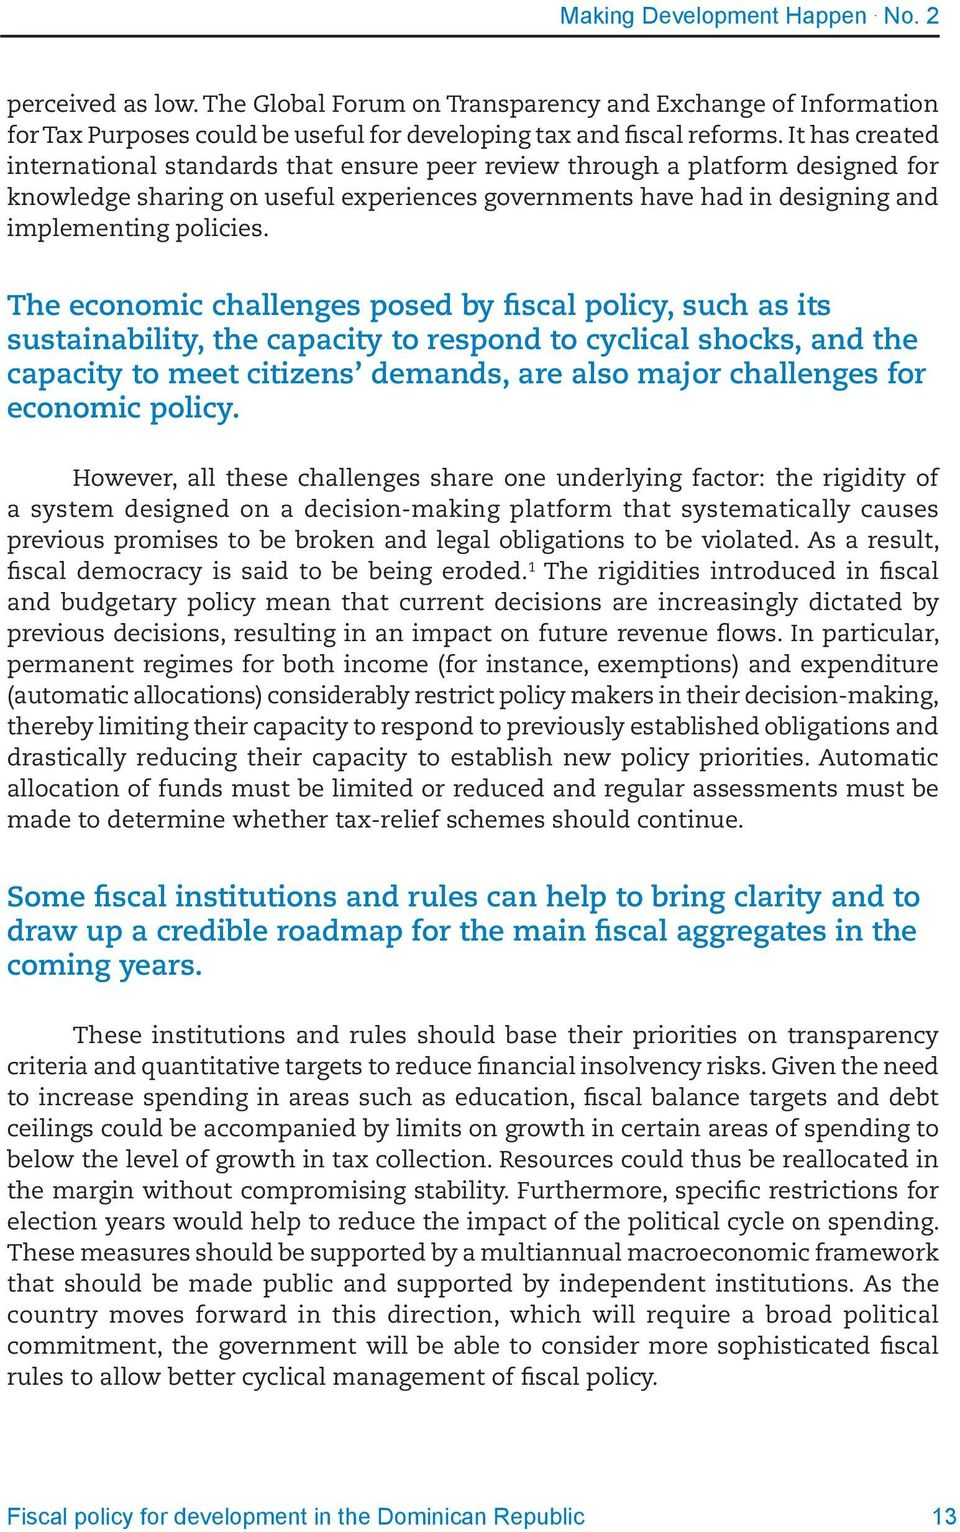 The economic challenges posed by fiscal policy, such as its sustainability, the capacity to respond to cyclical shocks, and the capacity to meet citizens demands, are also major challenges for